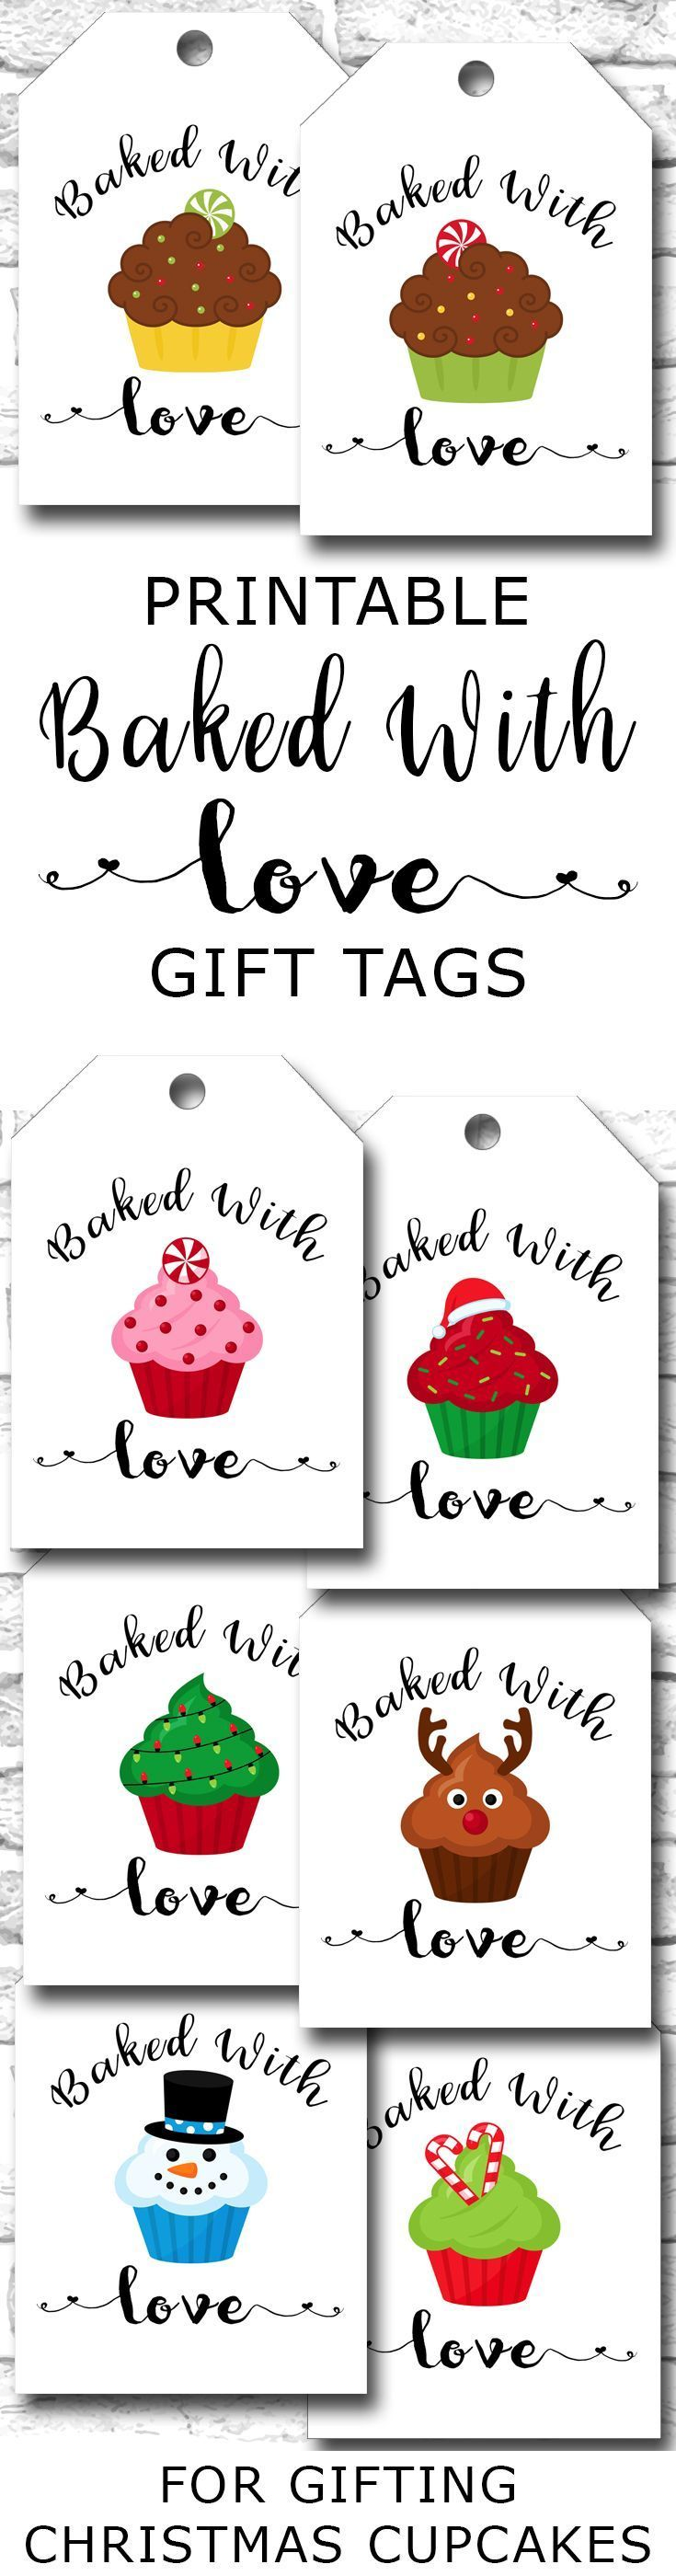 17 best ideas about christmas list printable printable baked love gift tags homemade food gift tags christmas gift tags cupcake favor tags baking gift tags instant